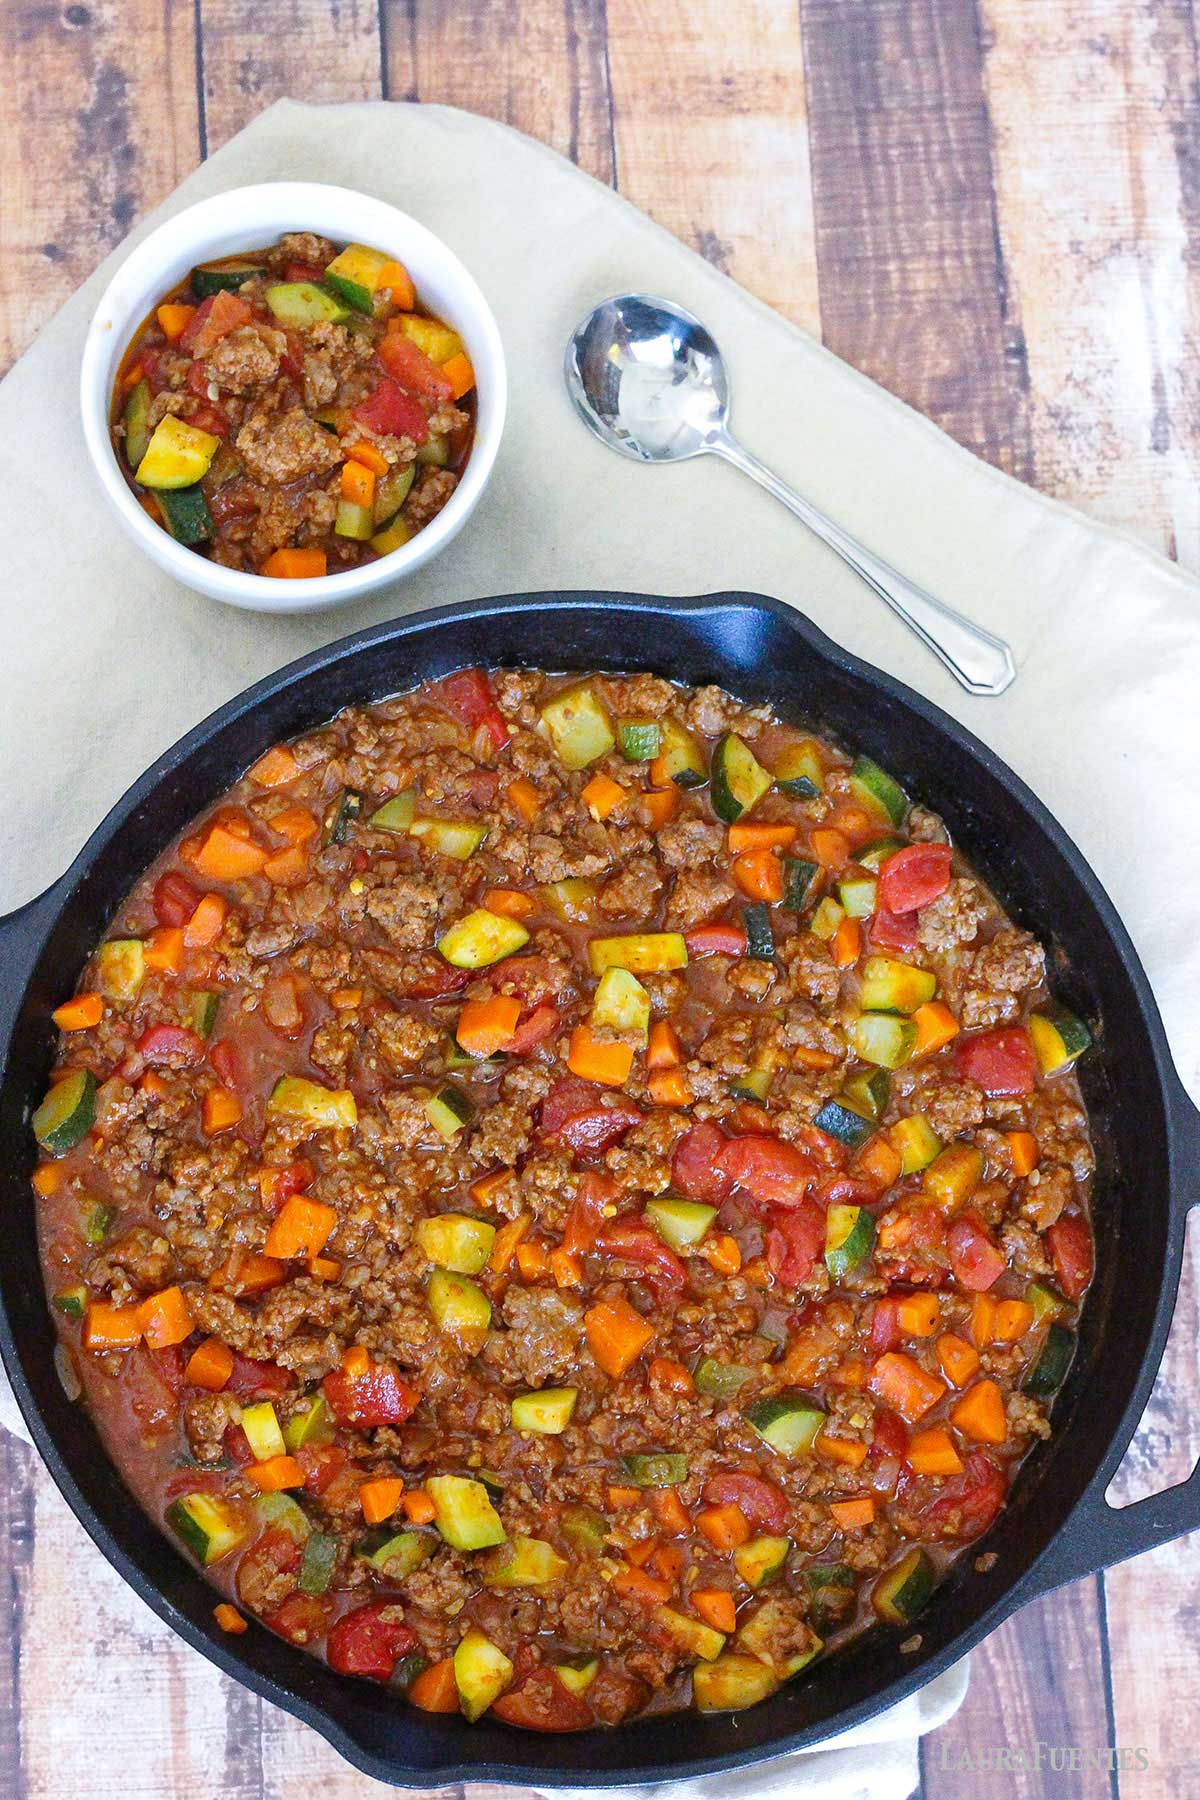 cast iron skillet full of meat and vegetable chili. Small white bowl of chili to the side of the skillet.